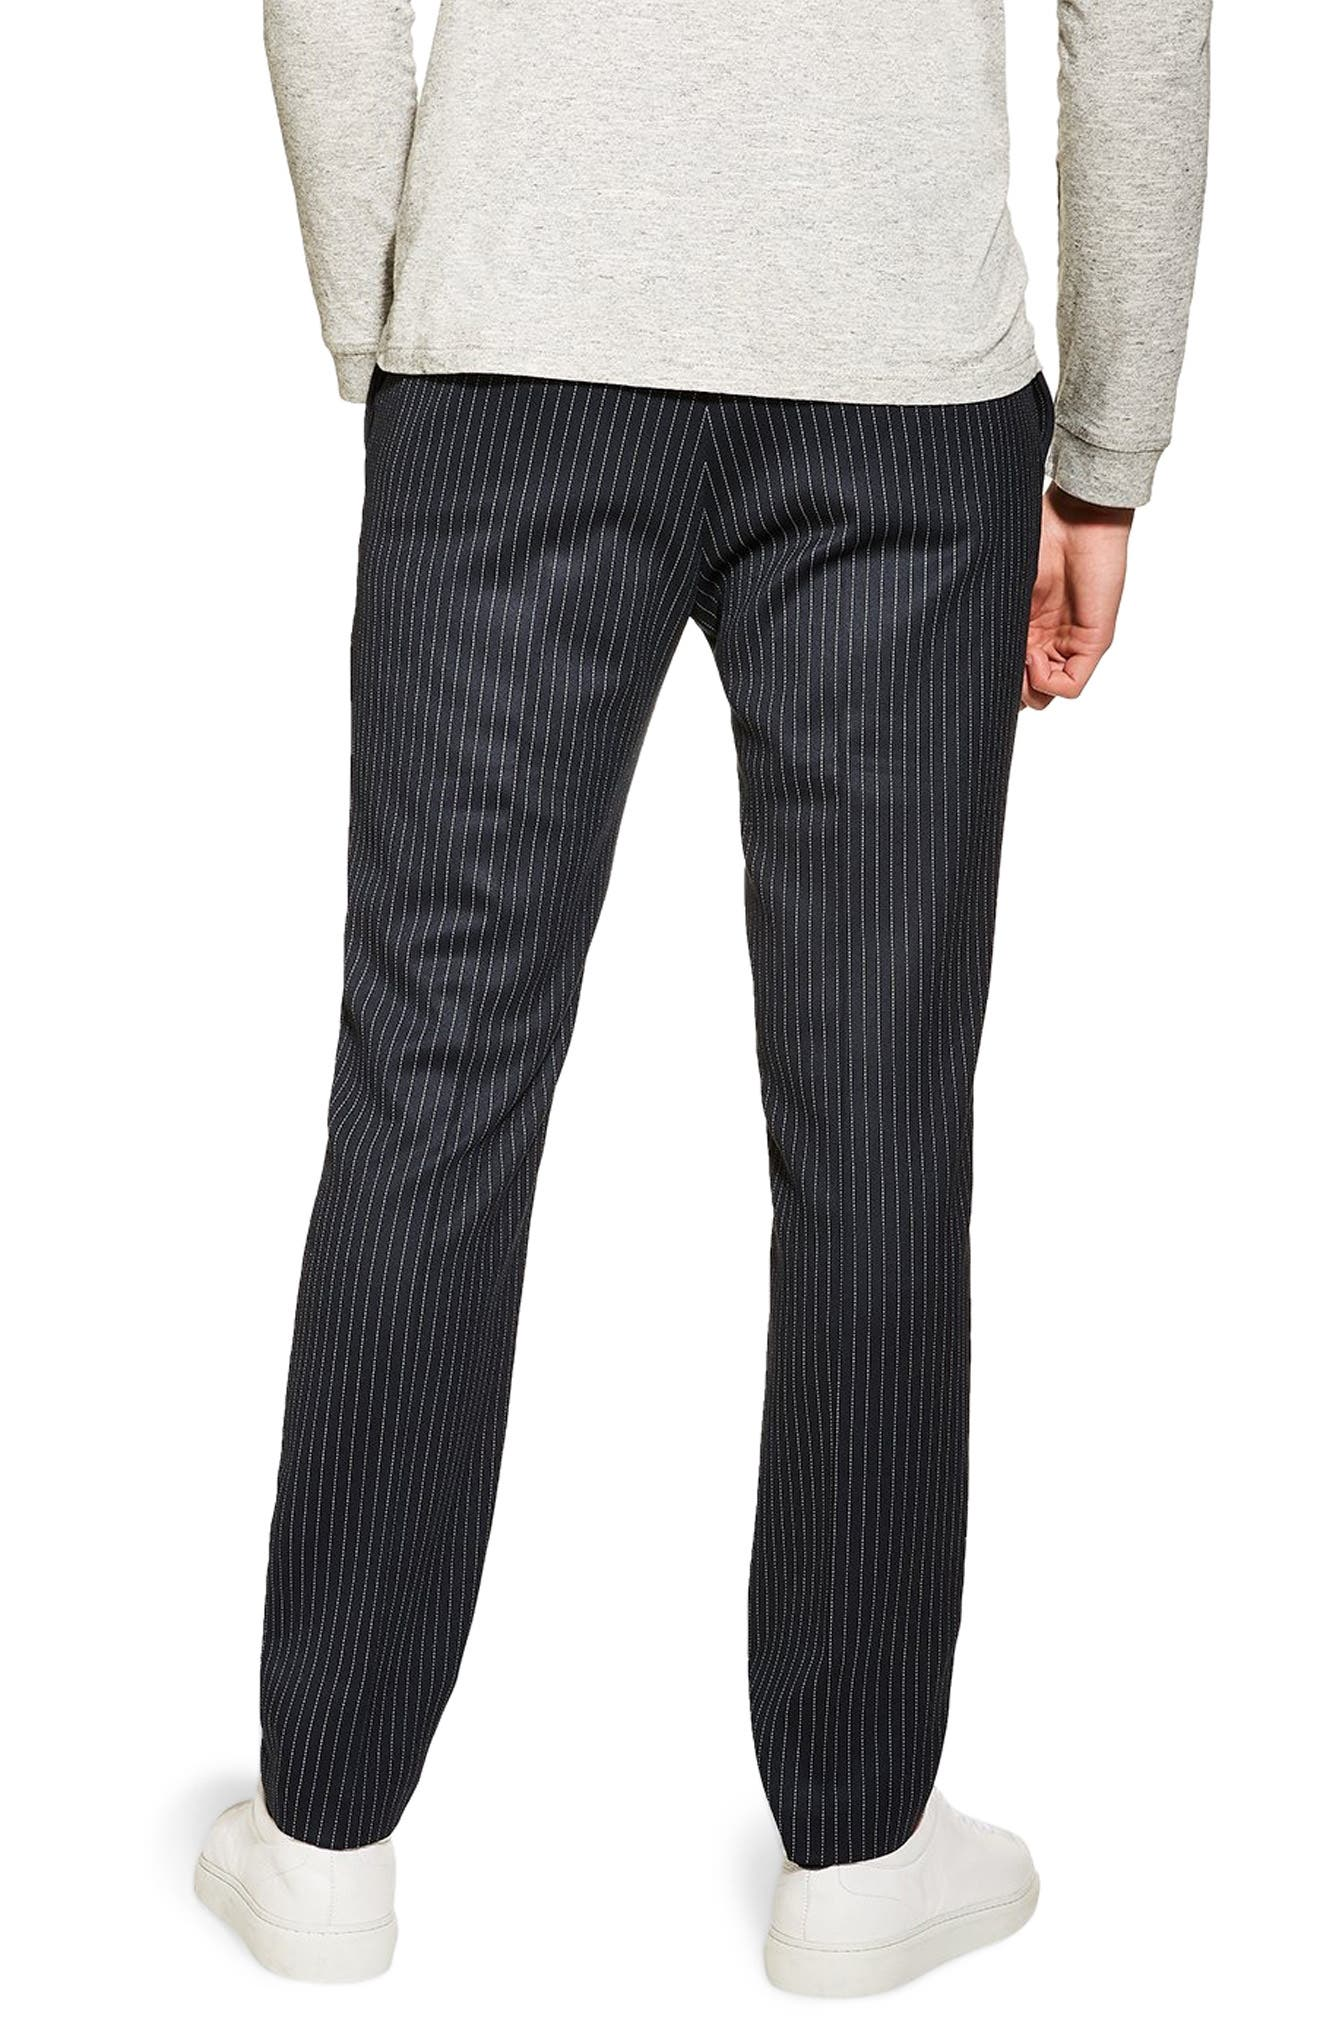 TOPMAN, Tailored Pinstripe Trousers, Alternate thumbnail 2, color, NAVY BLUE